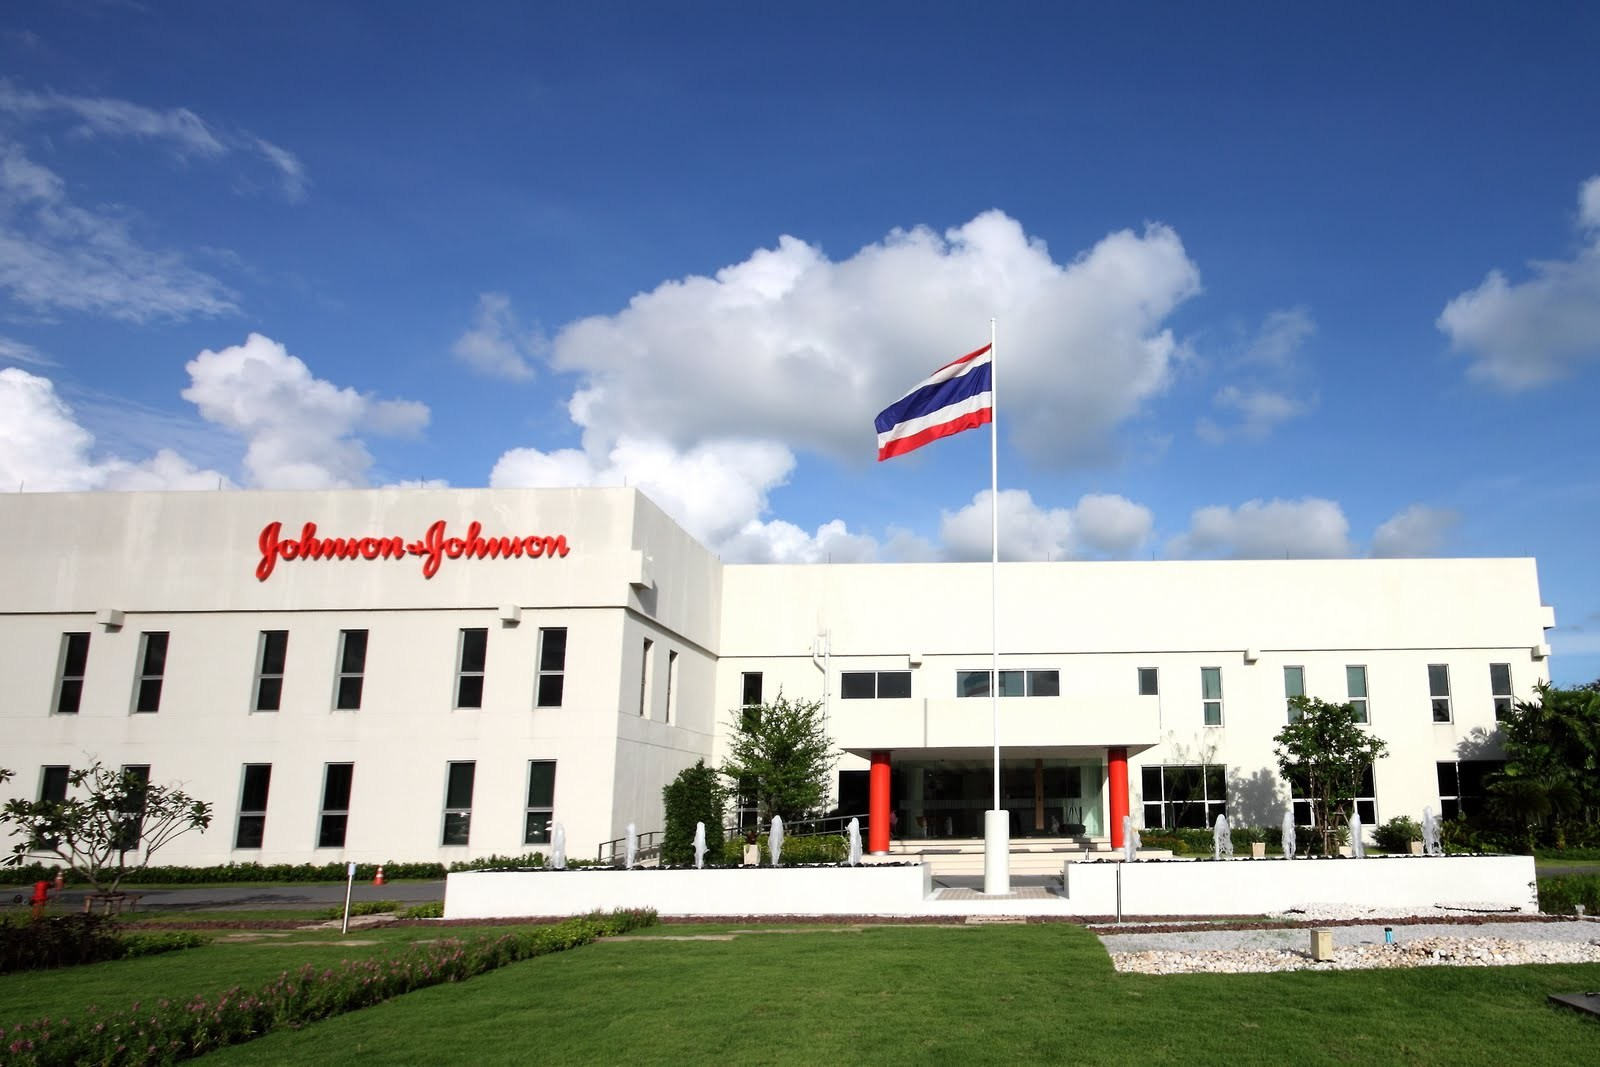 Johnson Johnson 1 - Estados Unidos: Johnson & Johnson pierde demanda por caso de talco